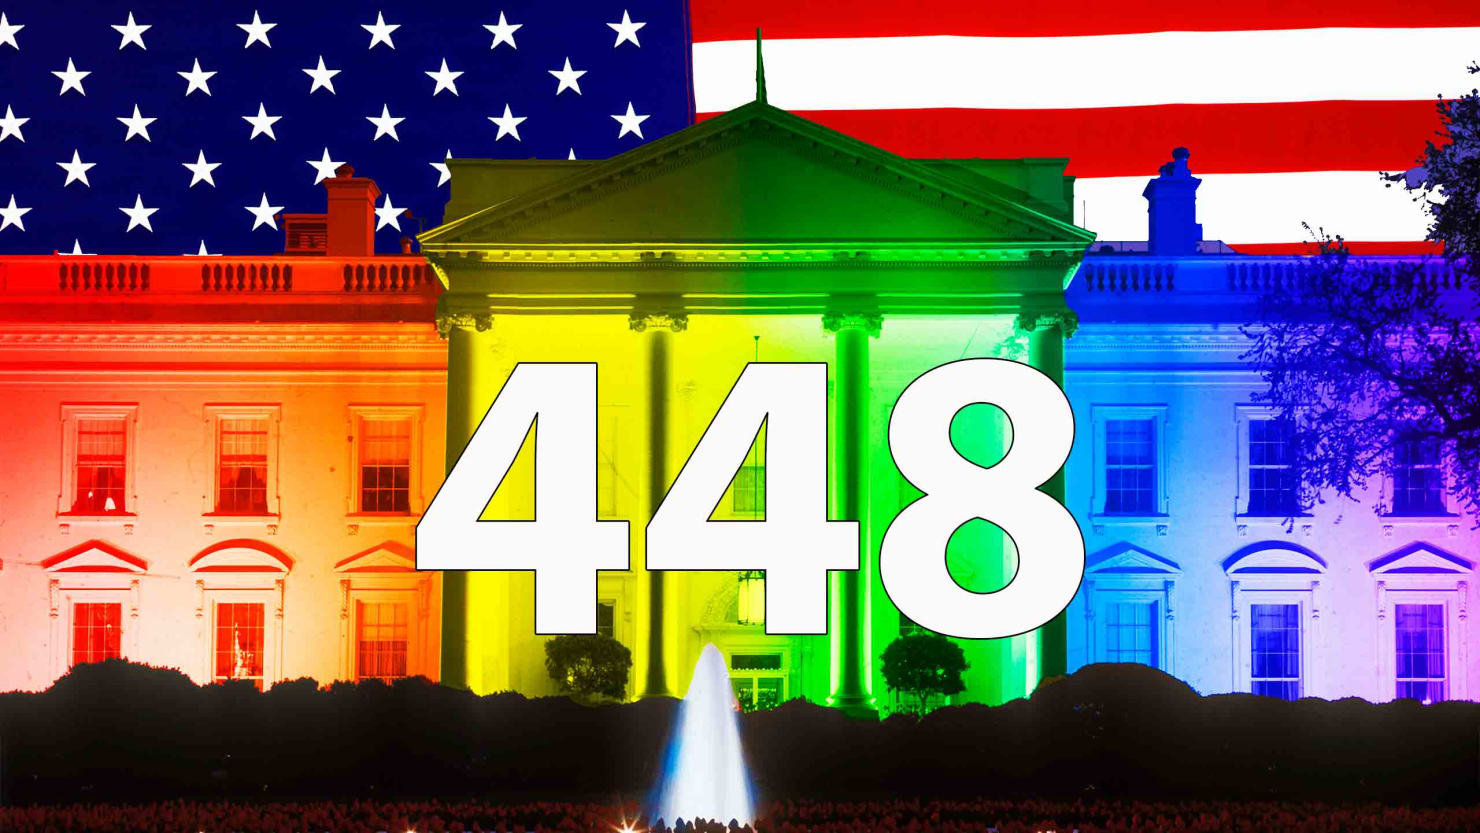 Green party united states statistics homosexual population